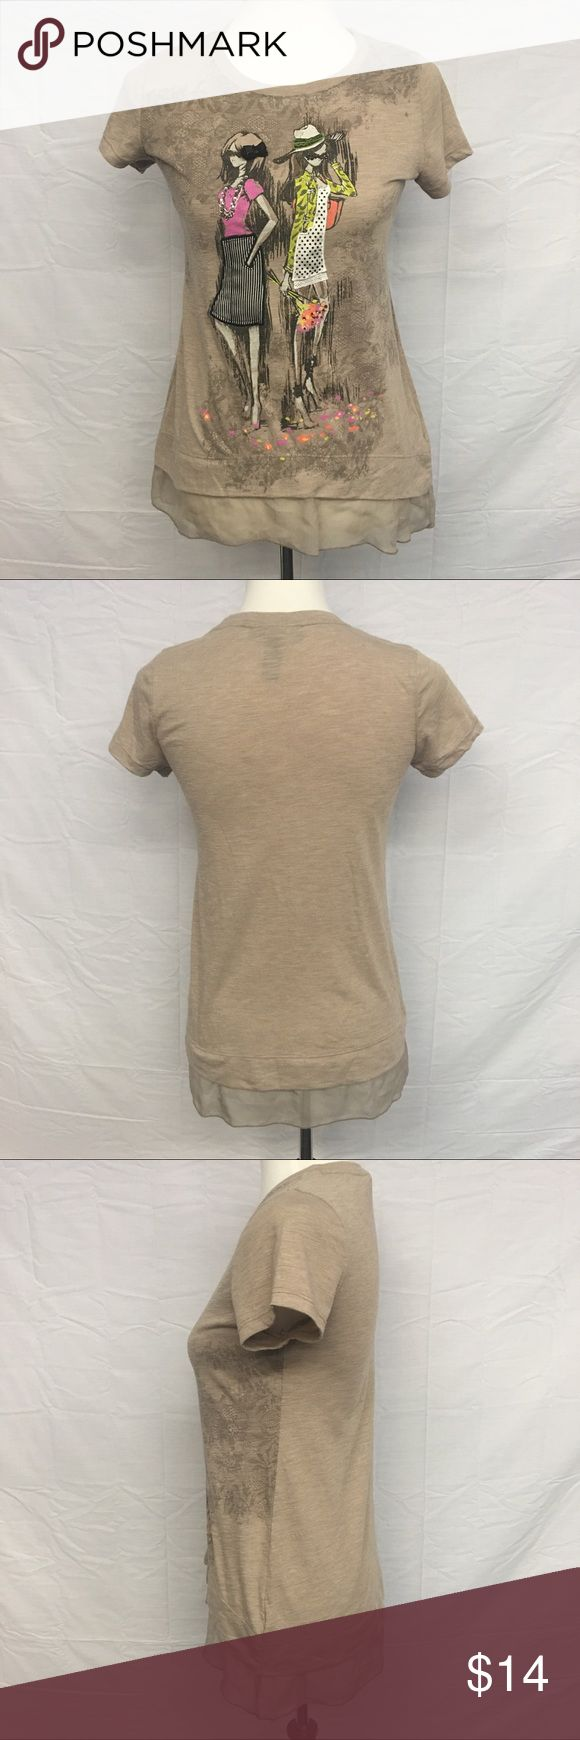 "Style & Co. Embellished Tee Super cute Style & Co. embellished tee! This adorable tee would look great with leggings, skirts, jeans, and shorts! You could dress it up or go casual! Light brown with a sheer ruffle on the bottom hem. Rhinestone's decorate the ladies clothes and flowers:) Very colorful and unique!! Like new condition, never worn. Measurements are: Bust 17""  Waist 17""  Length 27 1/2""  From a smoke and pet free home. Style & Co Tops Tees - Short Sleeve"